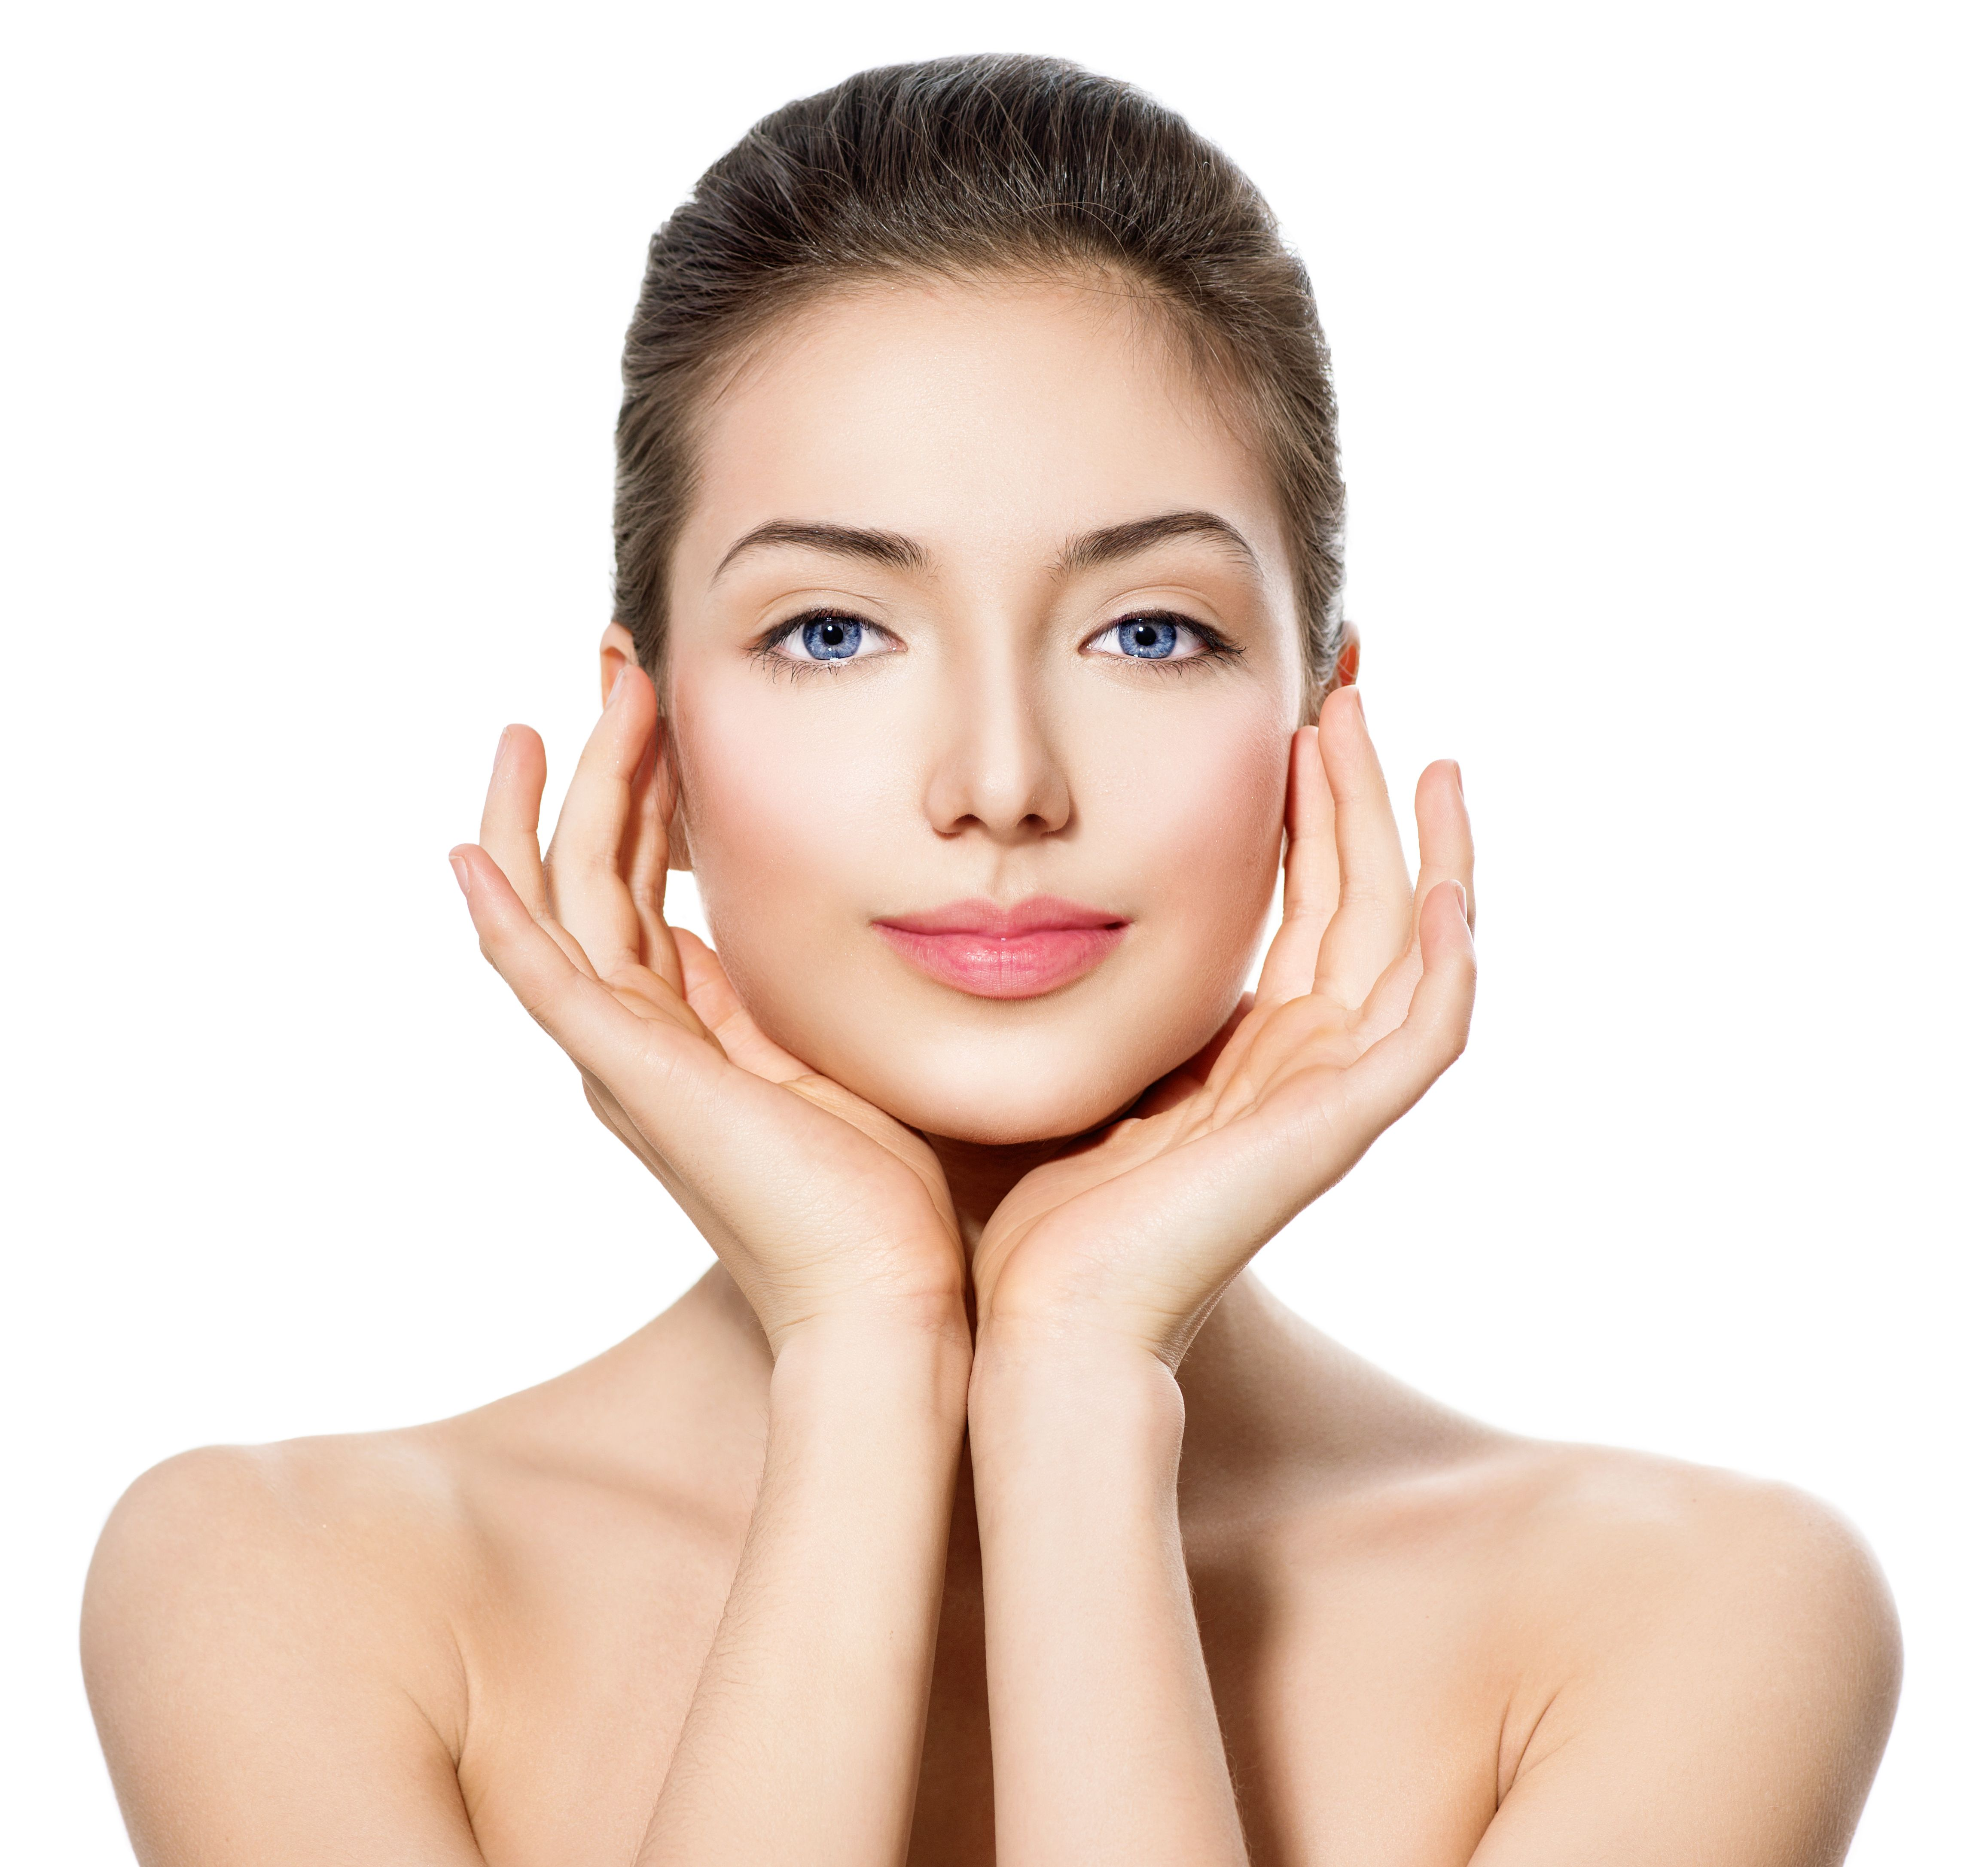 Healthy Skin Care: Healthy Skin Care Tips